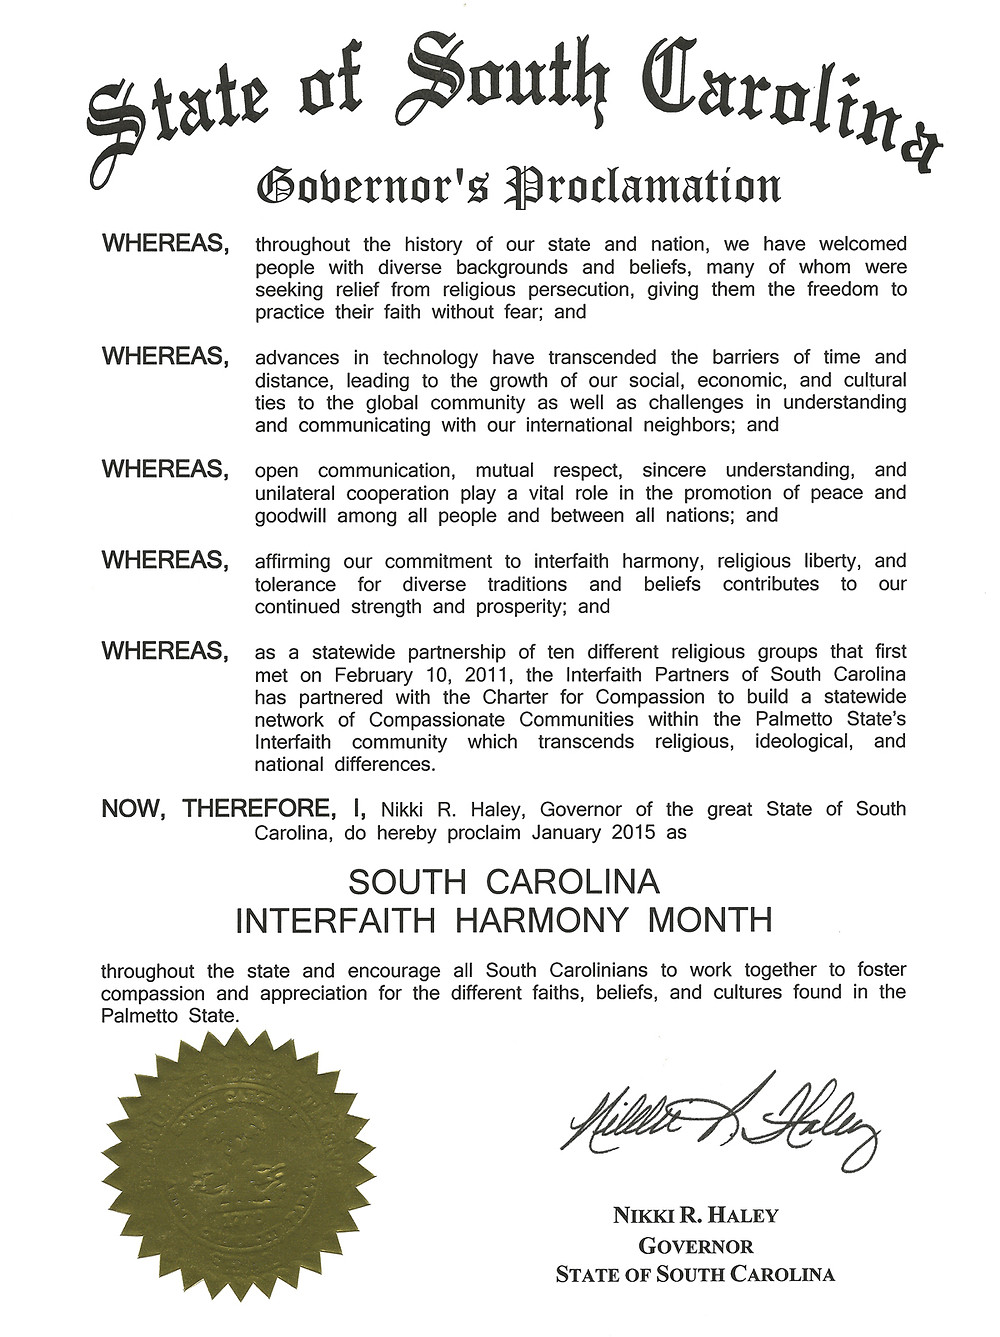 Proclamation of Interfaith Harmony Month 2015